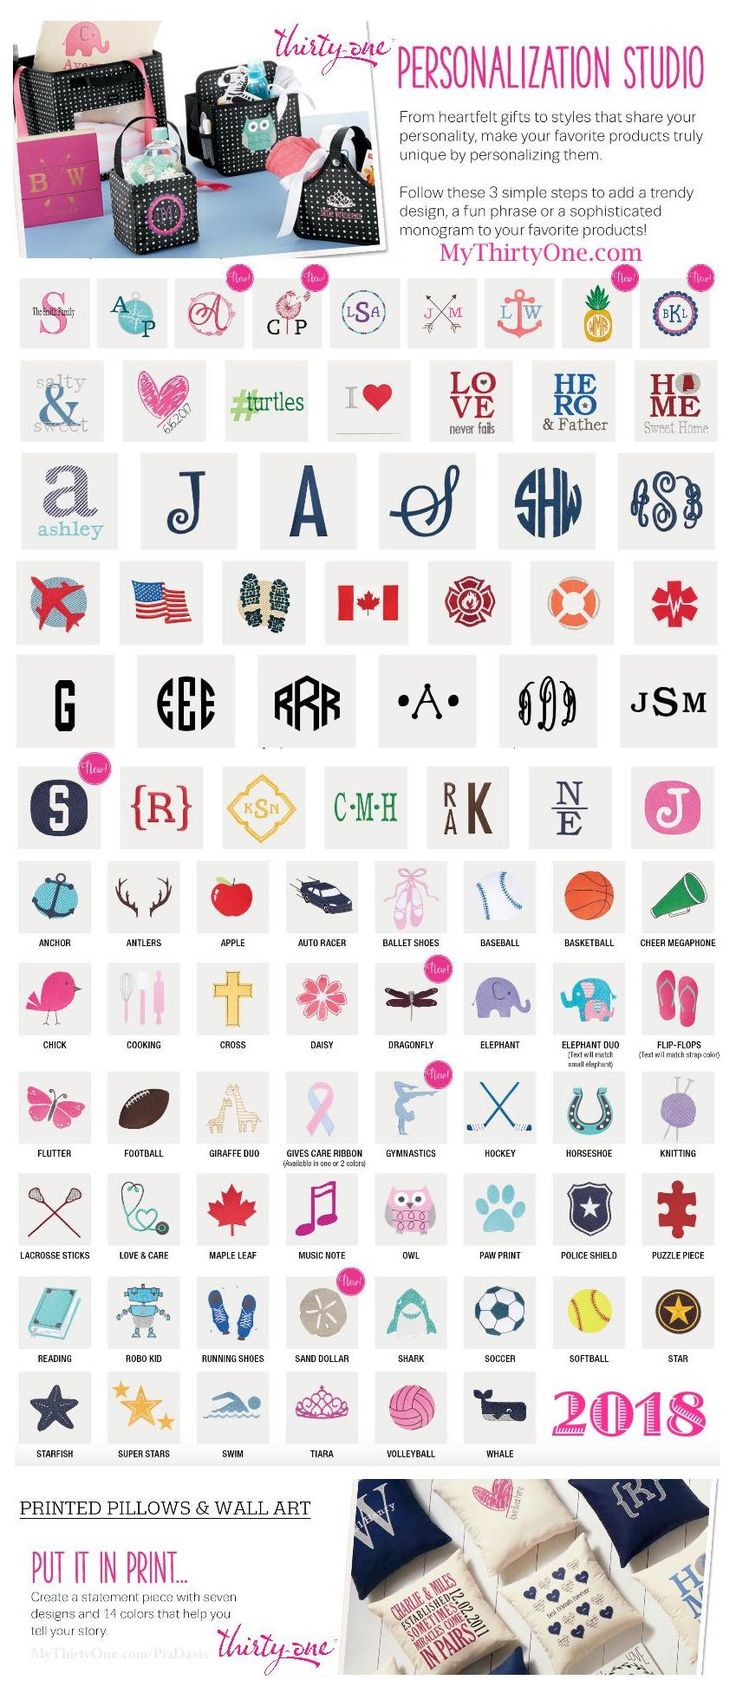 #31 2018 Personalization Studio by Thirty-One is your GO TO place to customize your special gifts for yourself or for others. Make your item one of a kind. Choose from Monogram Initials, graphics, text and special Icon-Its of all your favorite sports and activities. There are even seasonal images for different times of the year. Check it out at… MyThirtyOne.com